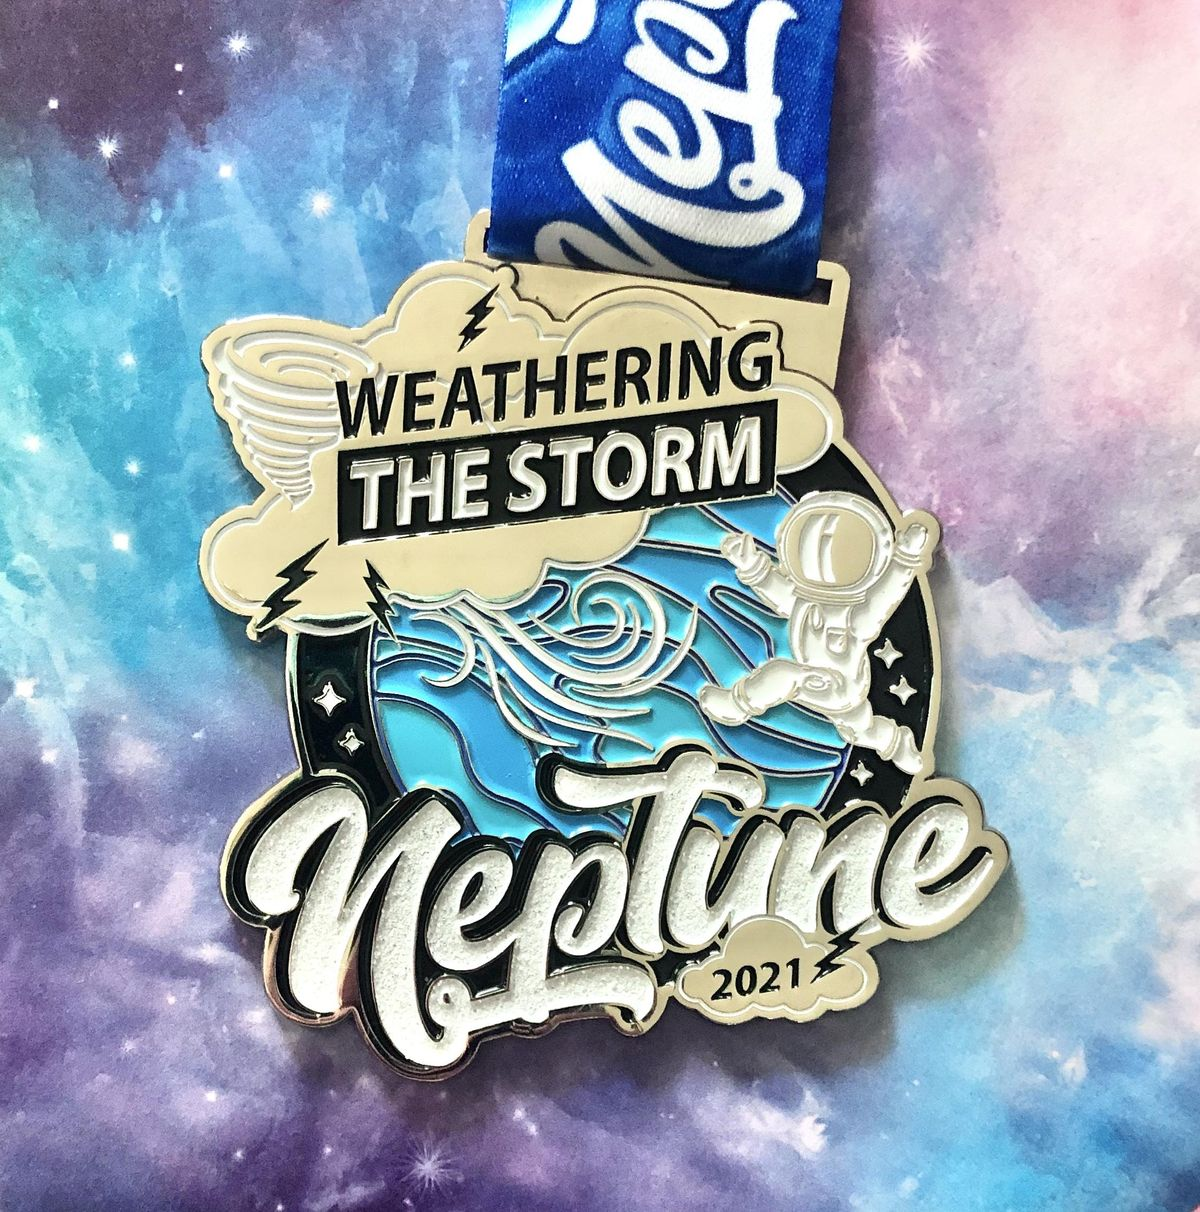 FREE! Neptune Weathering the Storm - Run and Walk Challenge  - Baltimore | Event in Baltimore | AllEvents.in